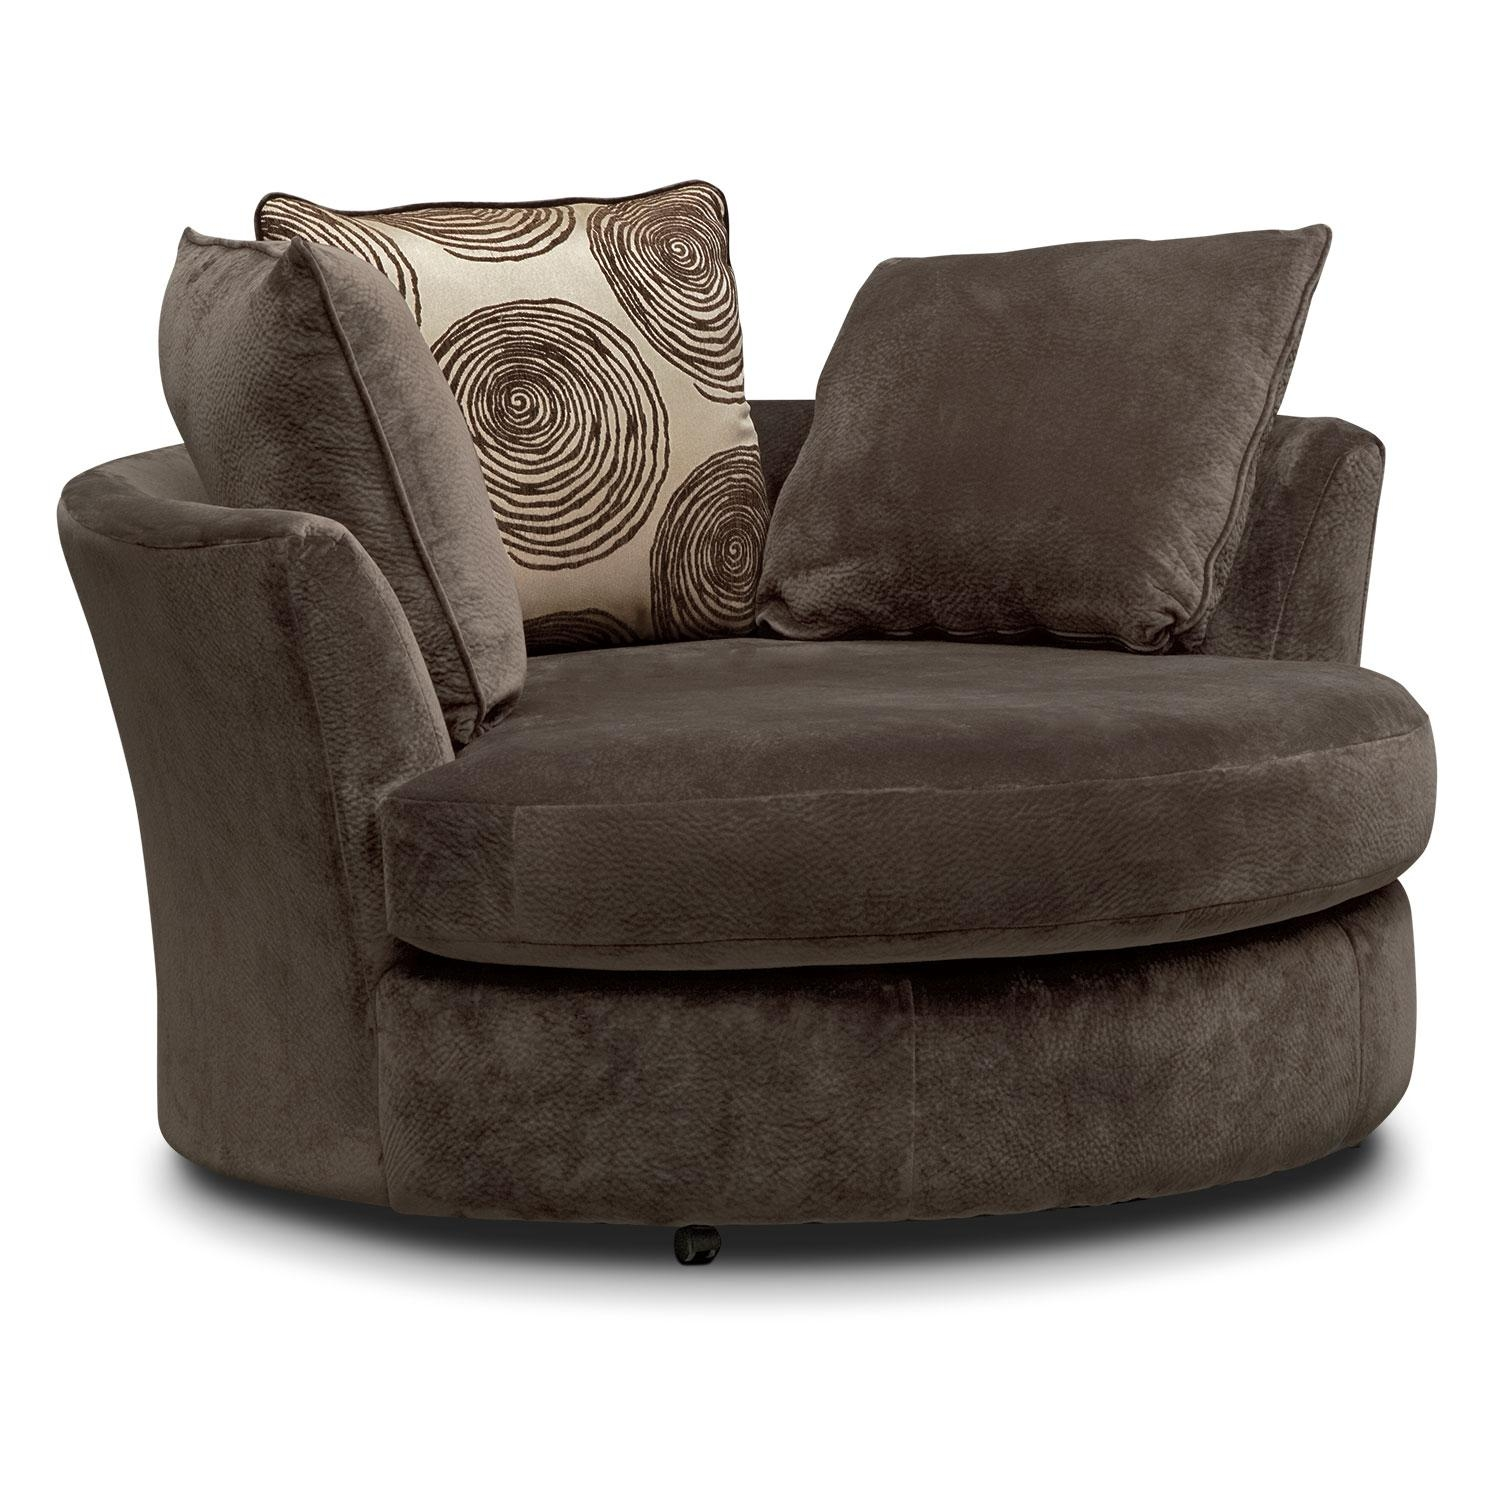 Cordelle 3 Piece Sectional And Swivel Chair Set – Chocolate Inside Corner Sofa And Swivel Chairs (Image 6 of 20)